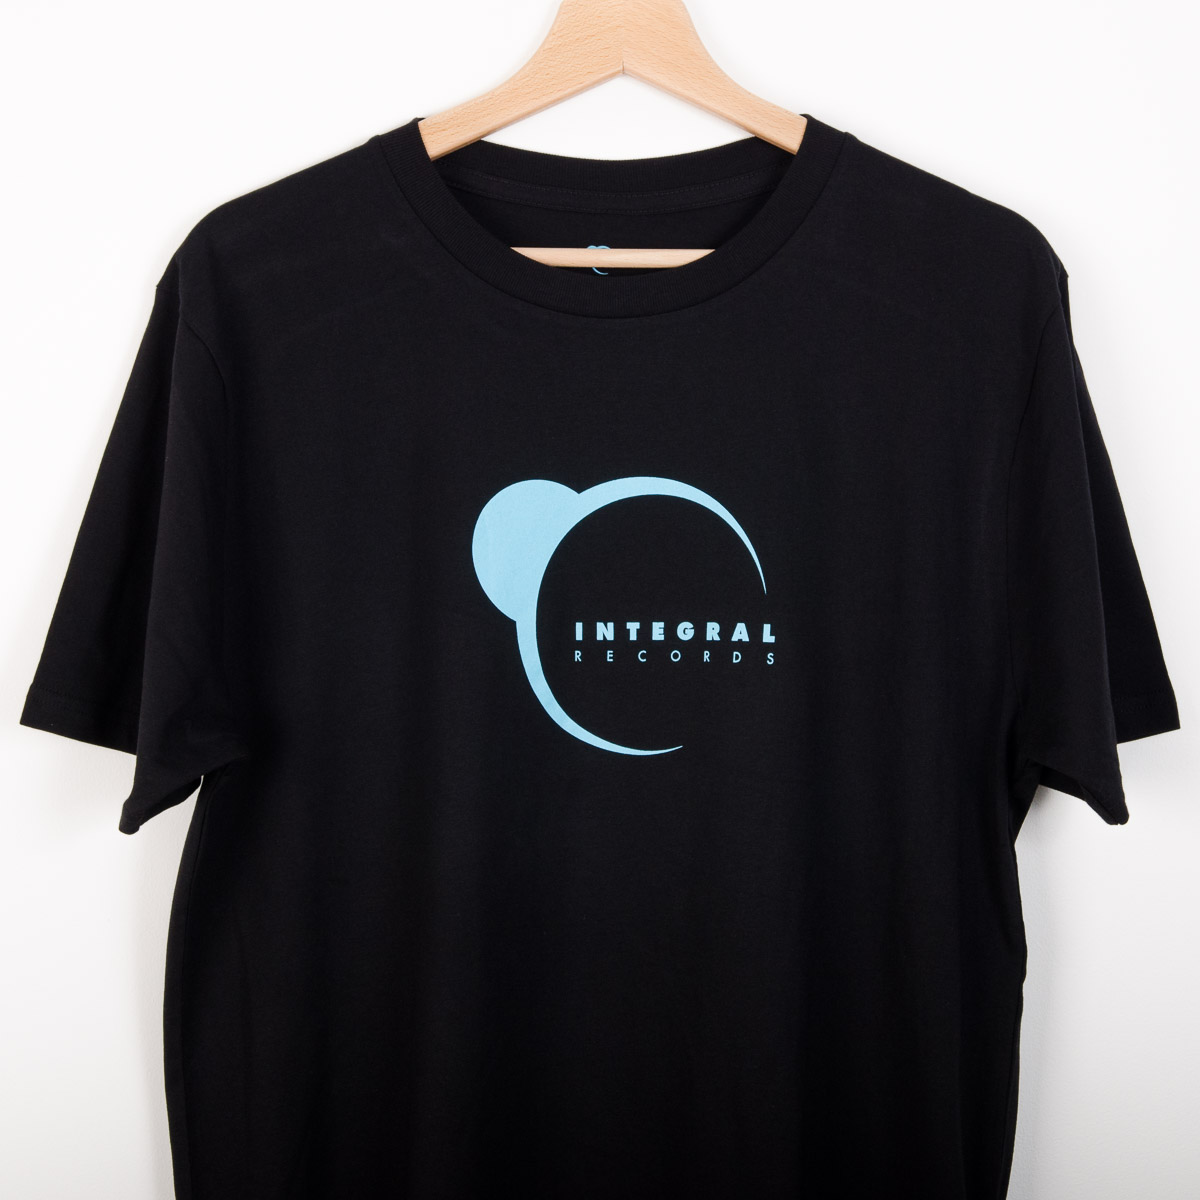 Integral Records Tee - Blue Print on Black